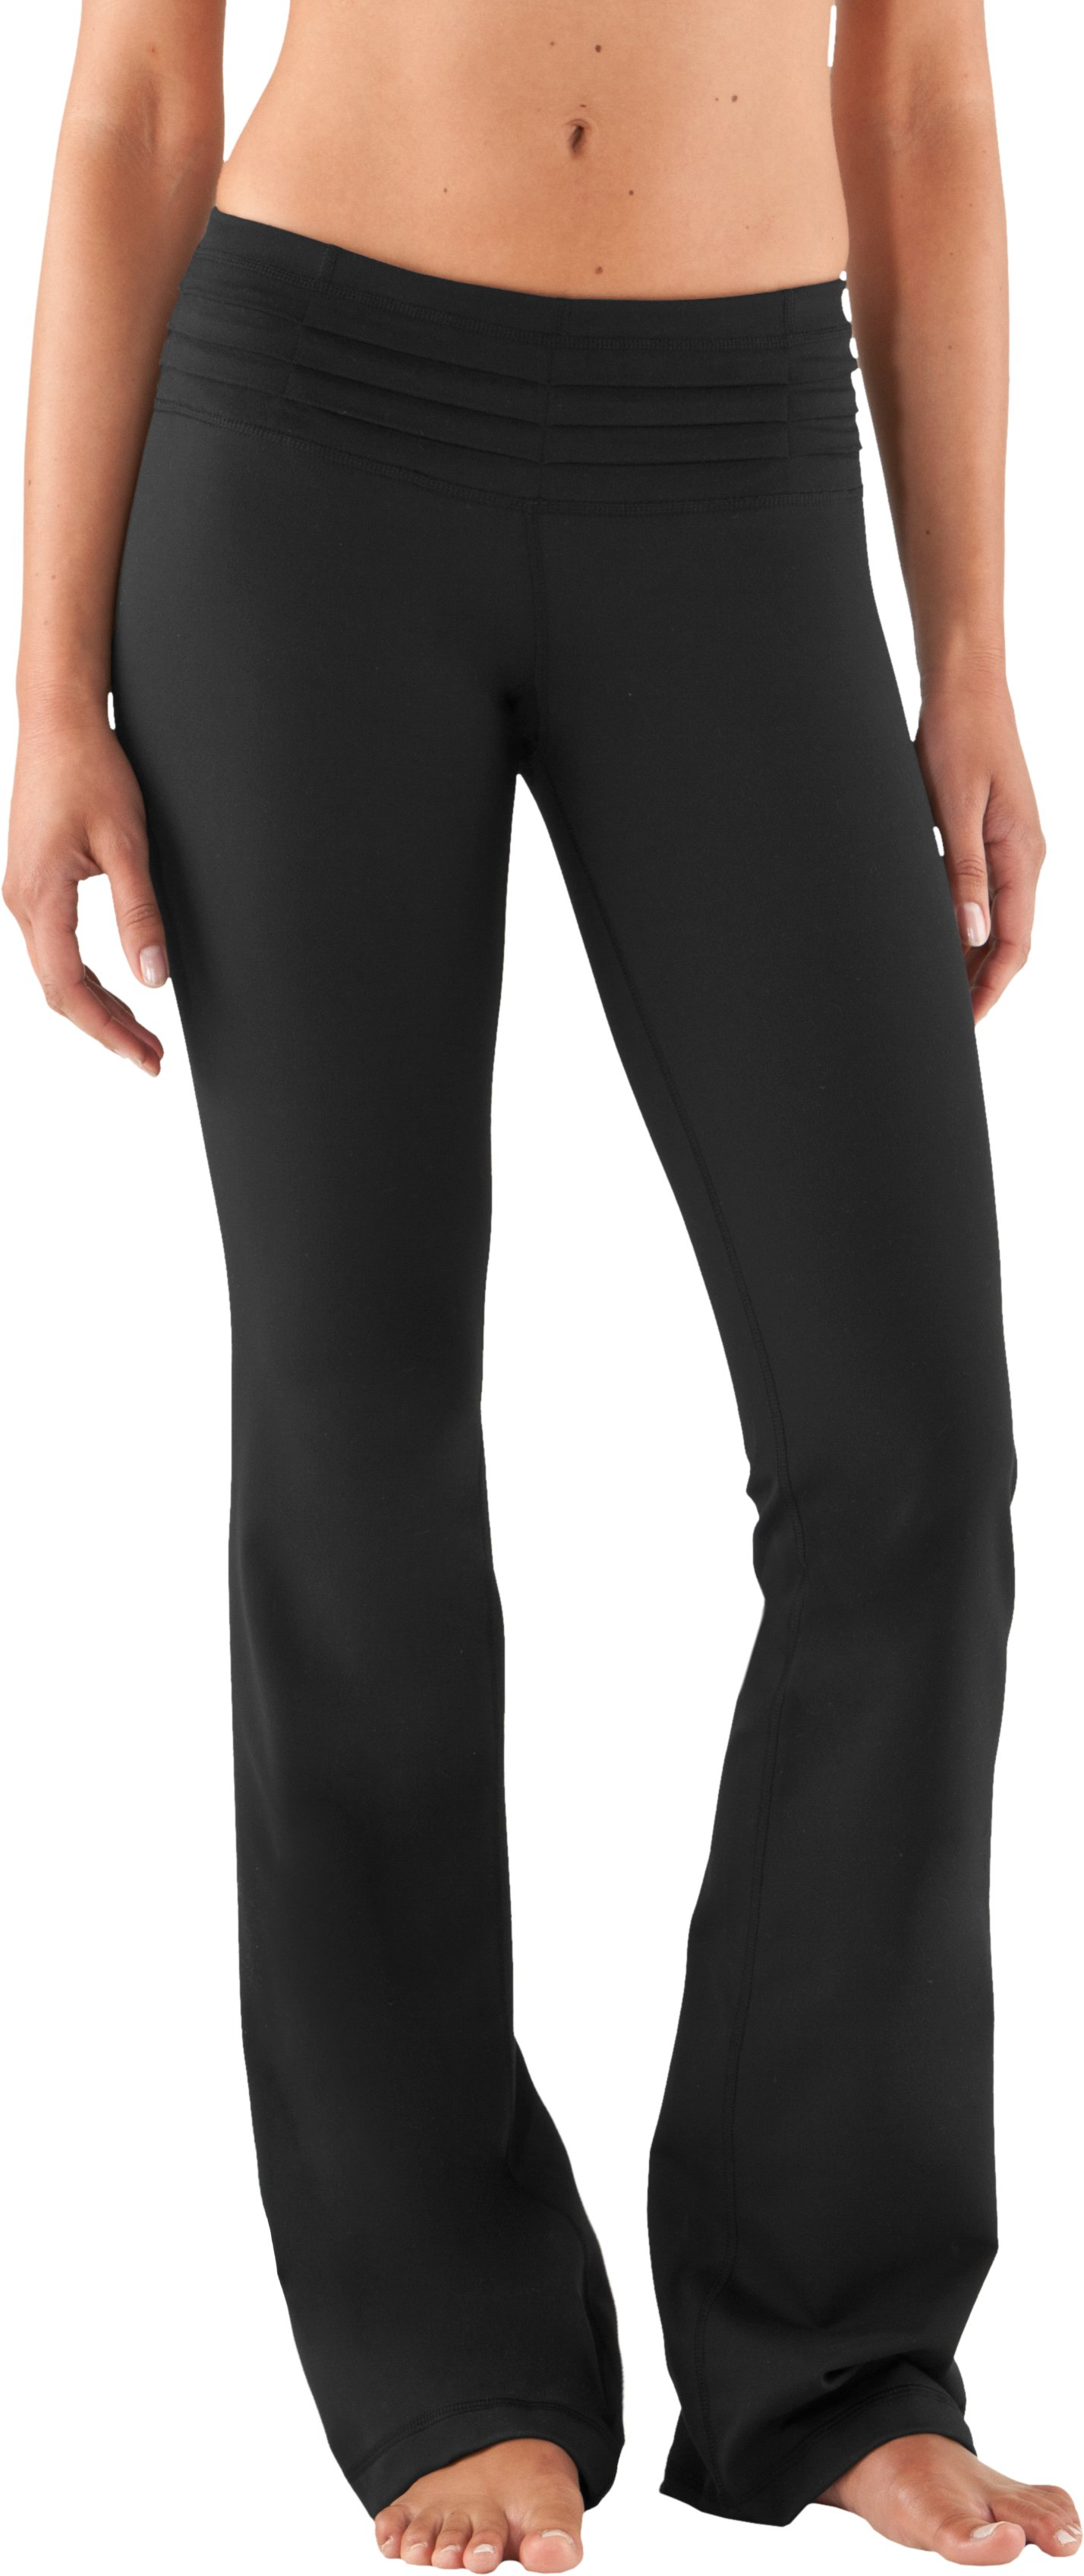 "Women's 35.5"" UA Quattro Pant - Tall, Black"